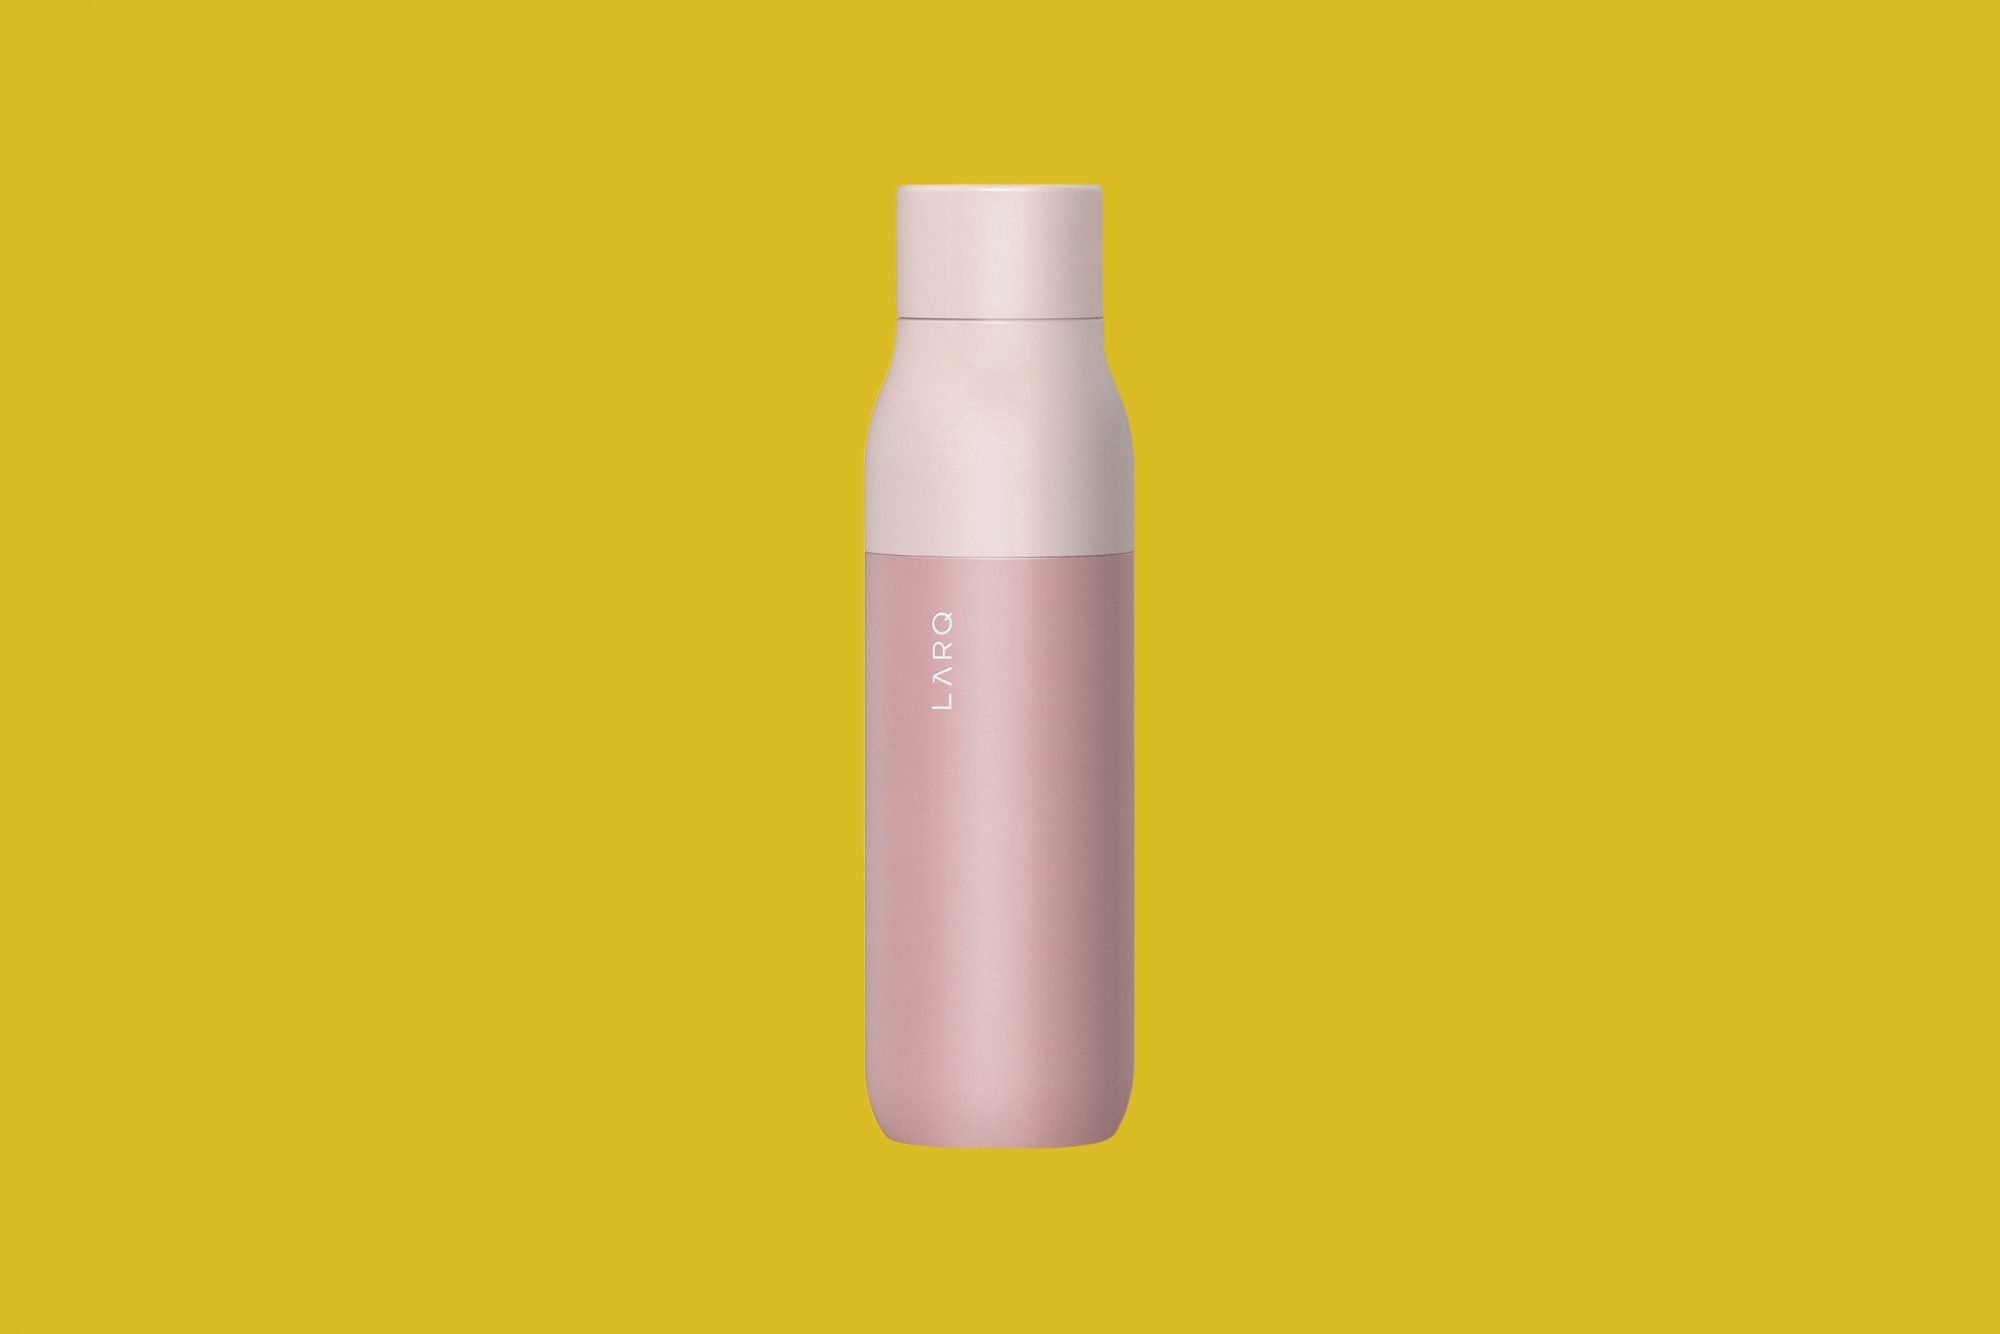 LARQ Self Cleaning Bottle in Himalayan Pink